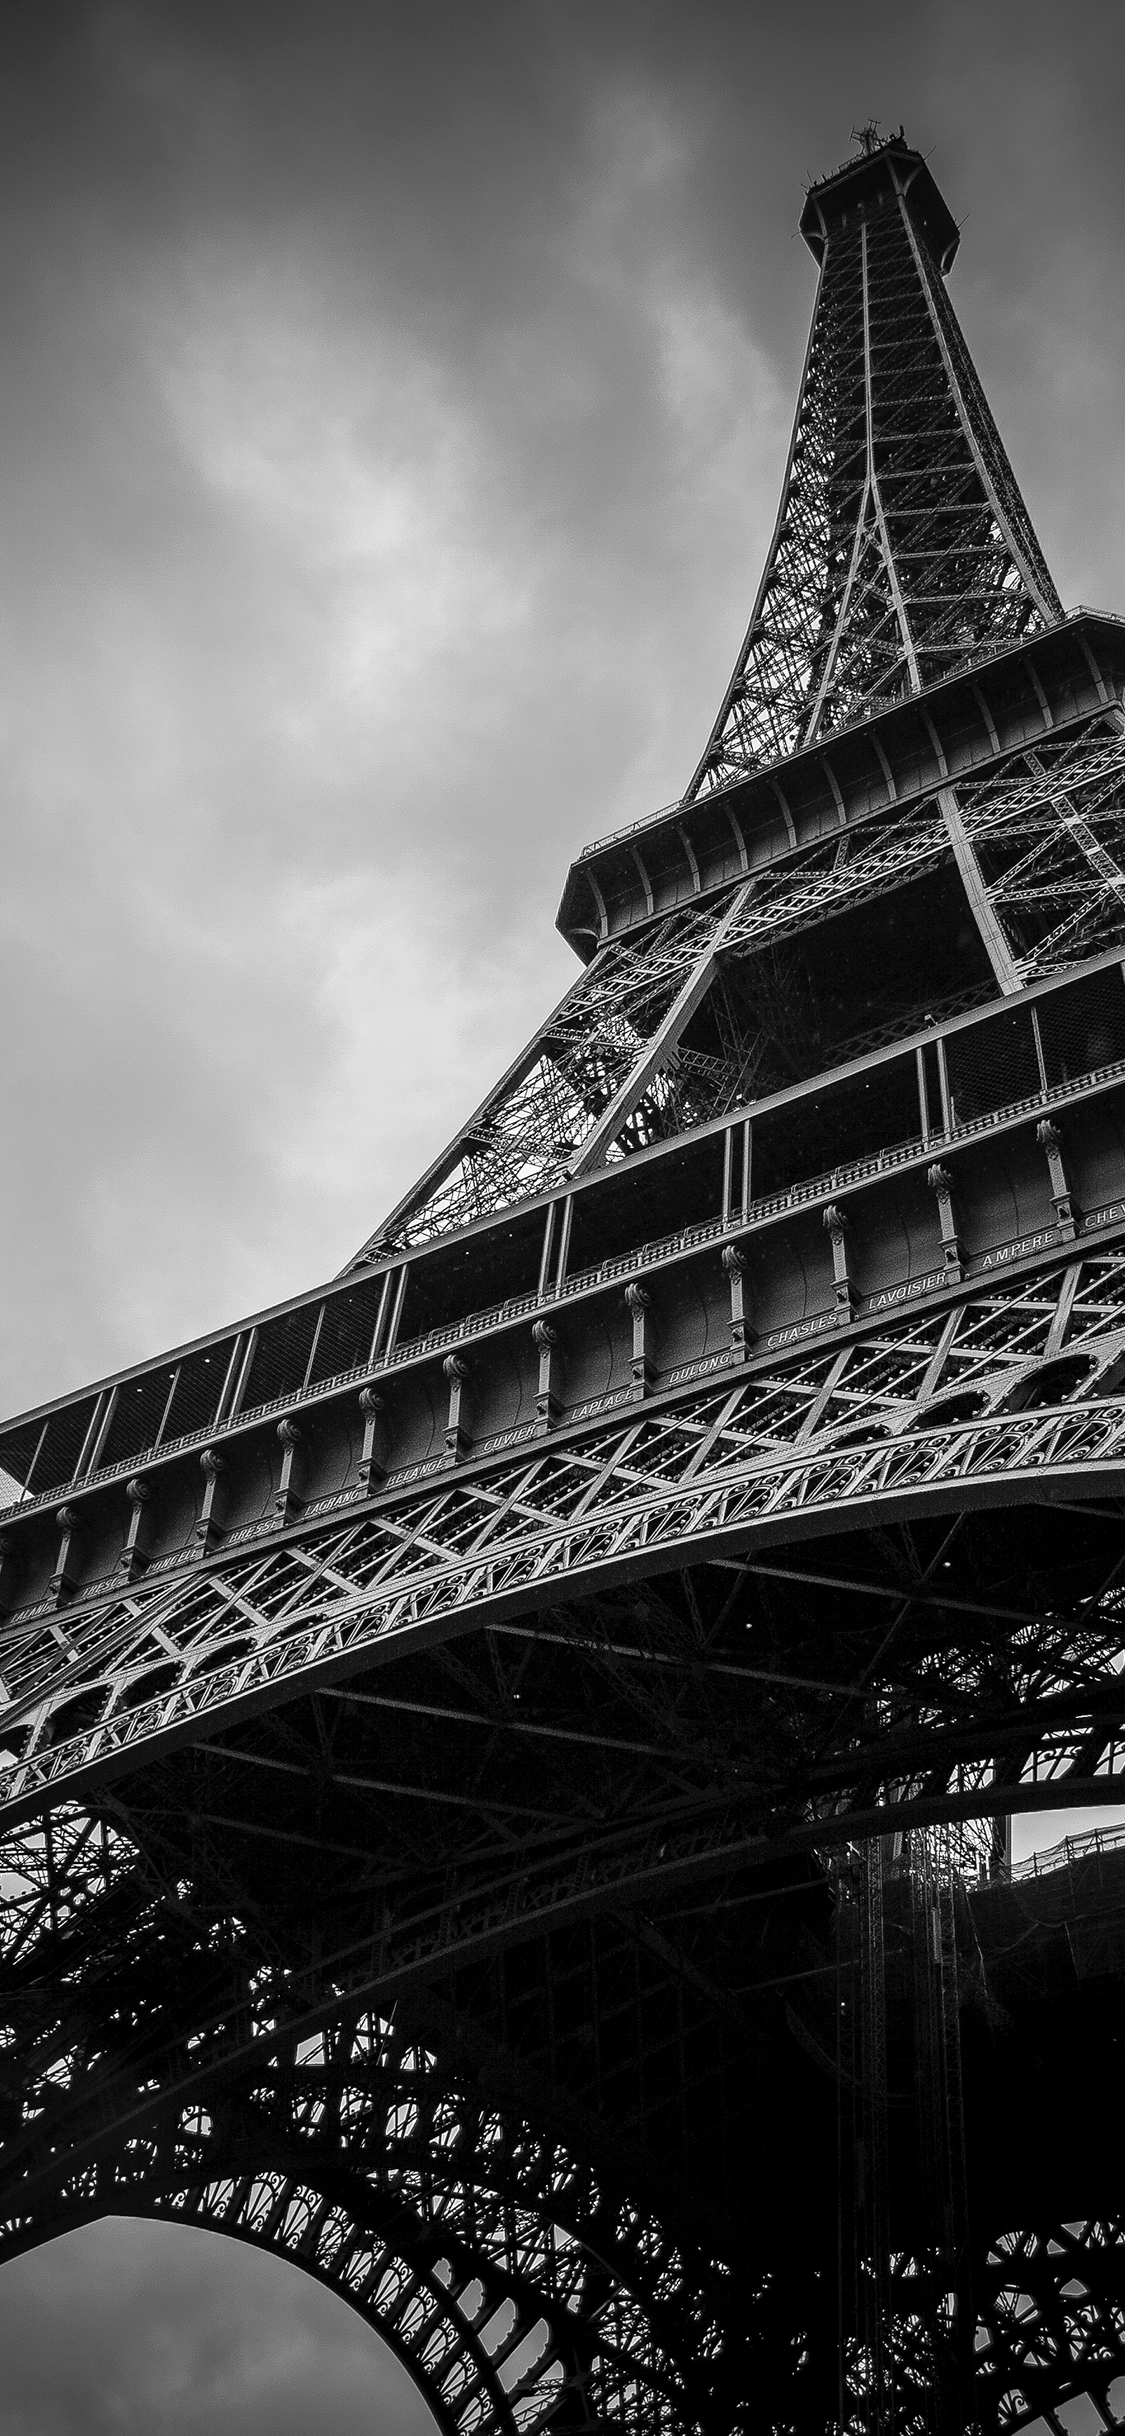 iPhone wallpaper black and white eiffel tower Fonds d'écran iPhone du 13/08/2018